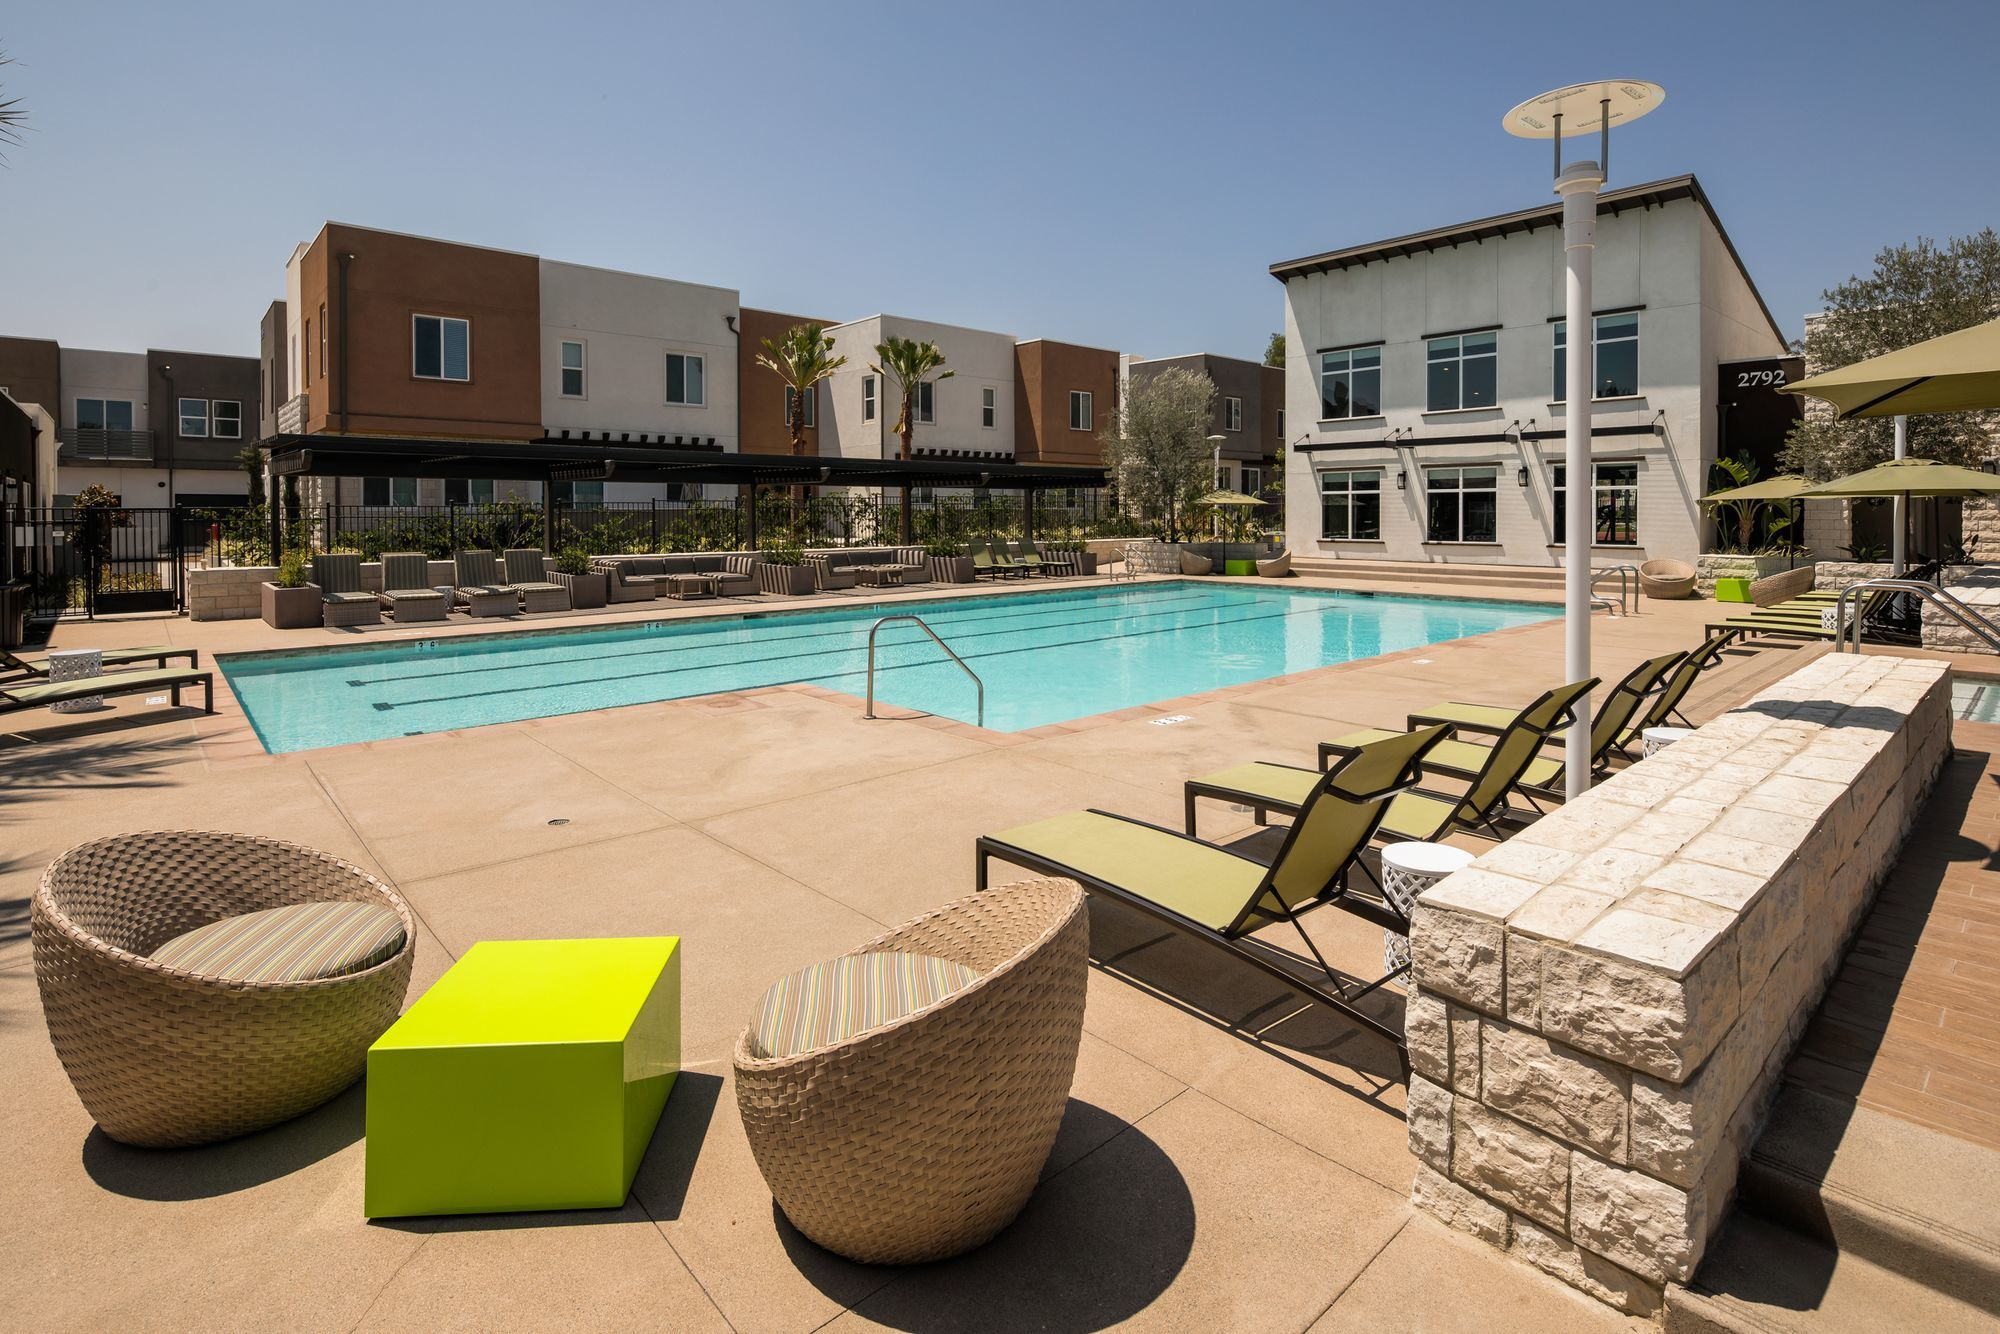 Wondrous 20 Best Apartments For Rent In Corona Ca With Pictures Download Free Architecture Designs Scobabritishbridgeorg